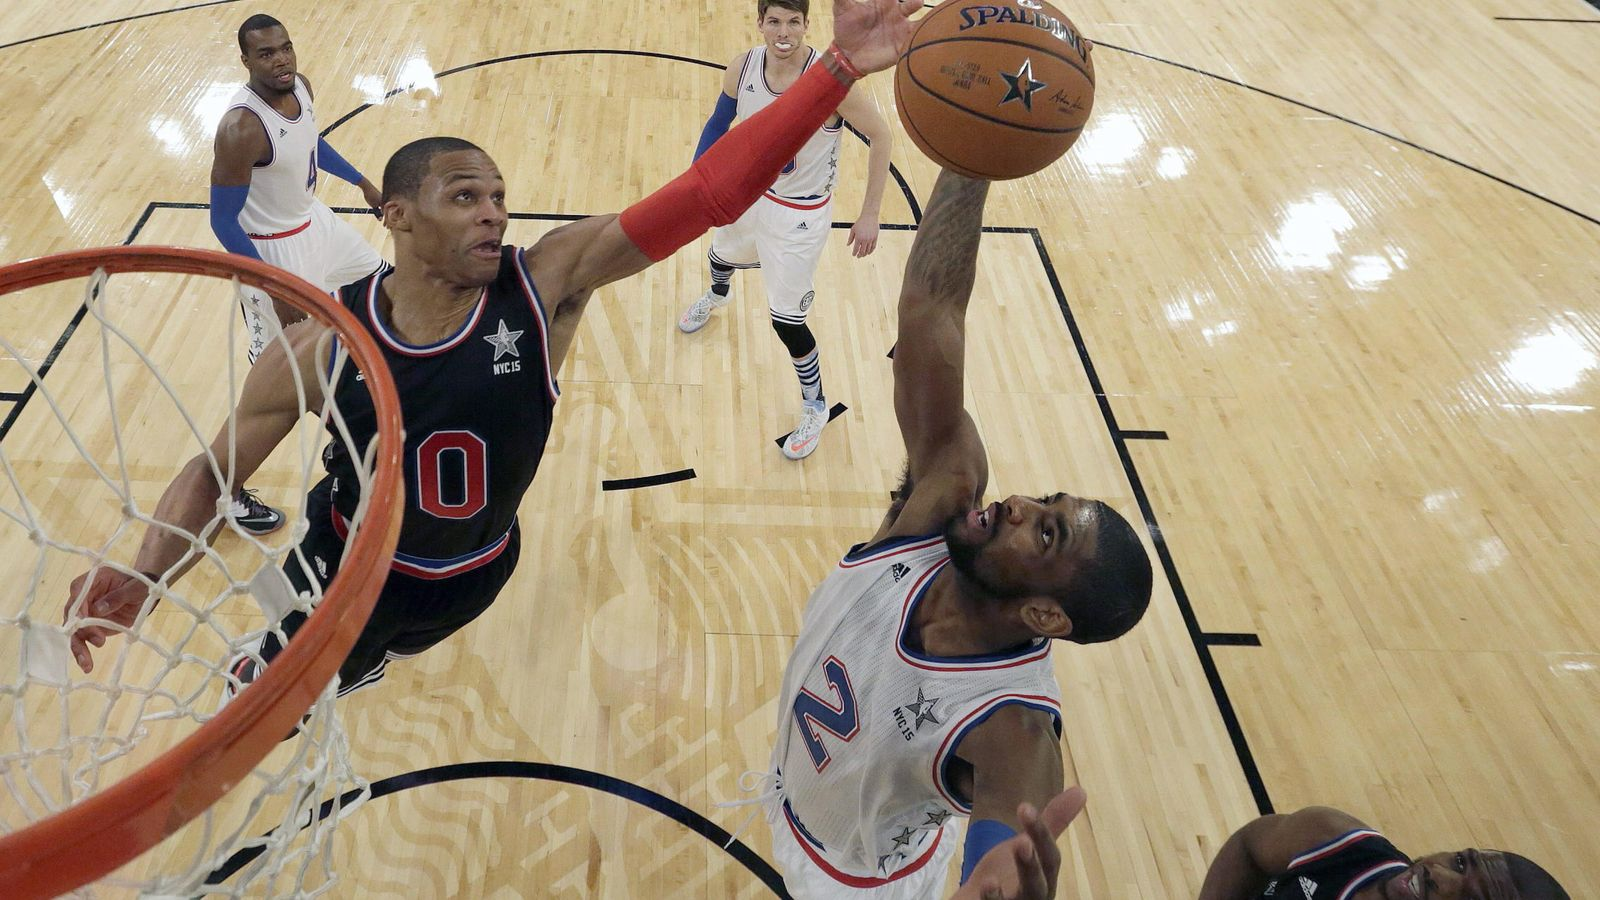 Foto: Russell Westbrook y Kyrie Irving, en el All Star de la NBA. (EFE)